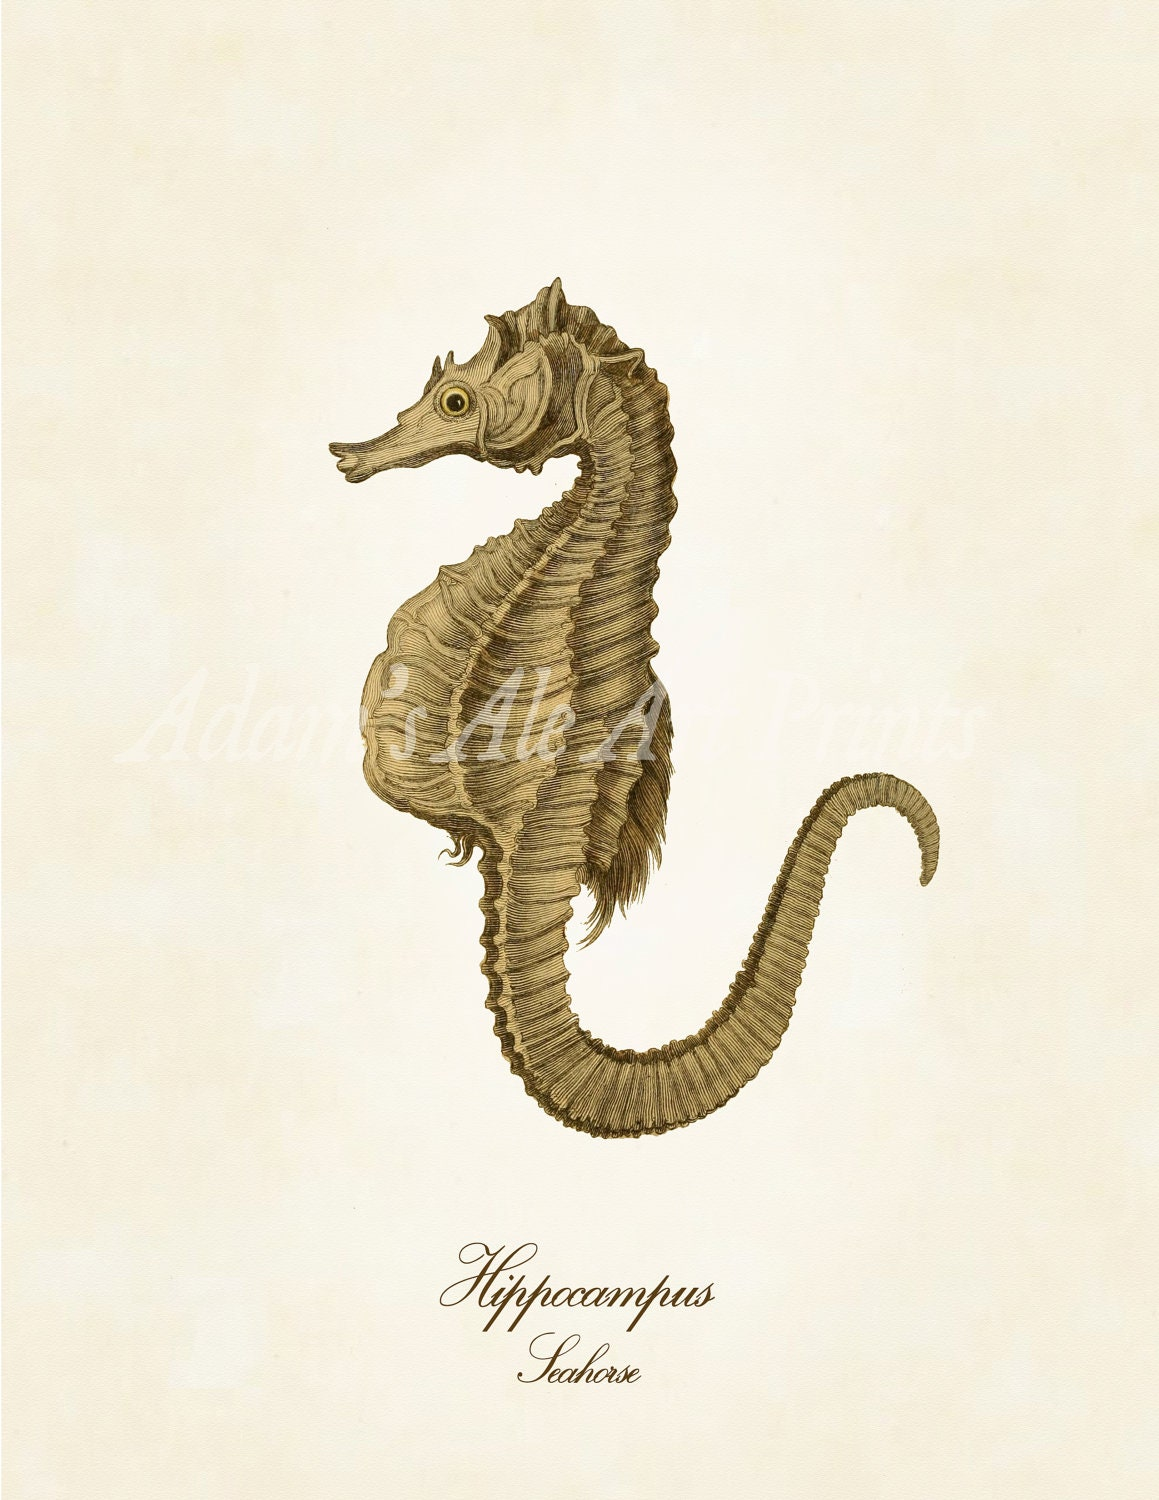 Sweet Seahorse Art Print or Poster from Vintage Scientific